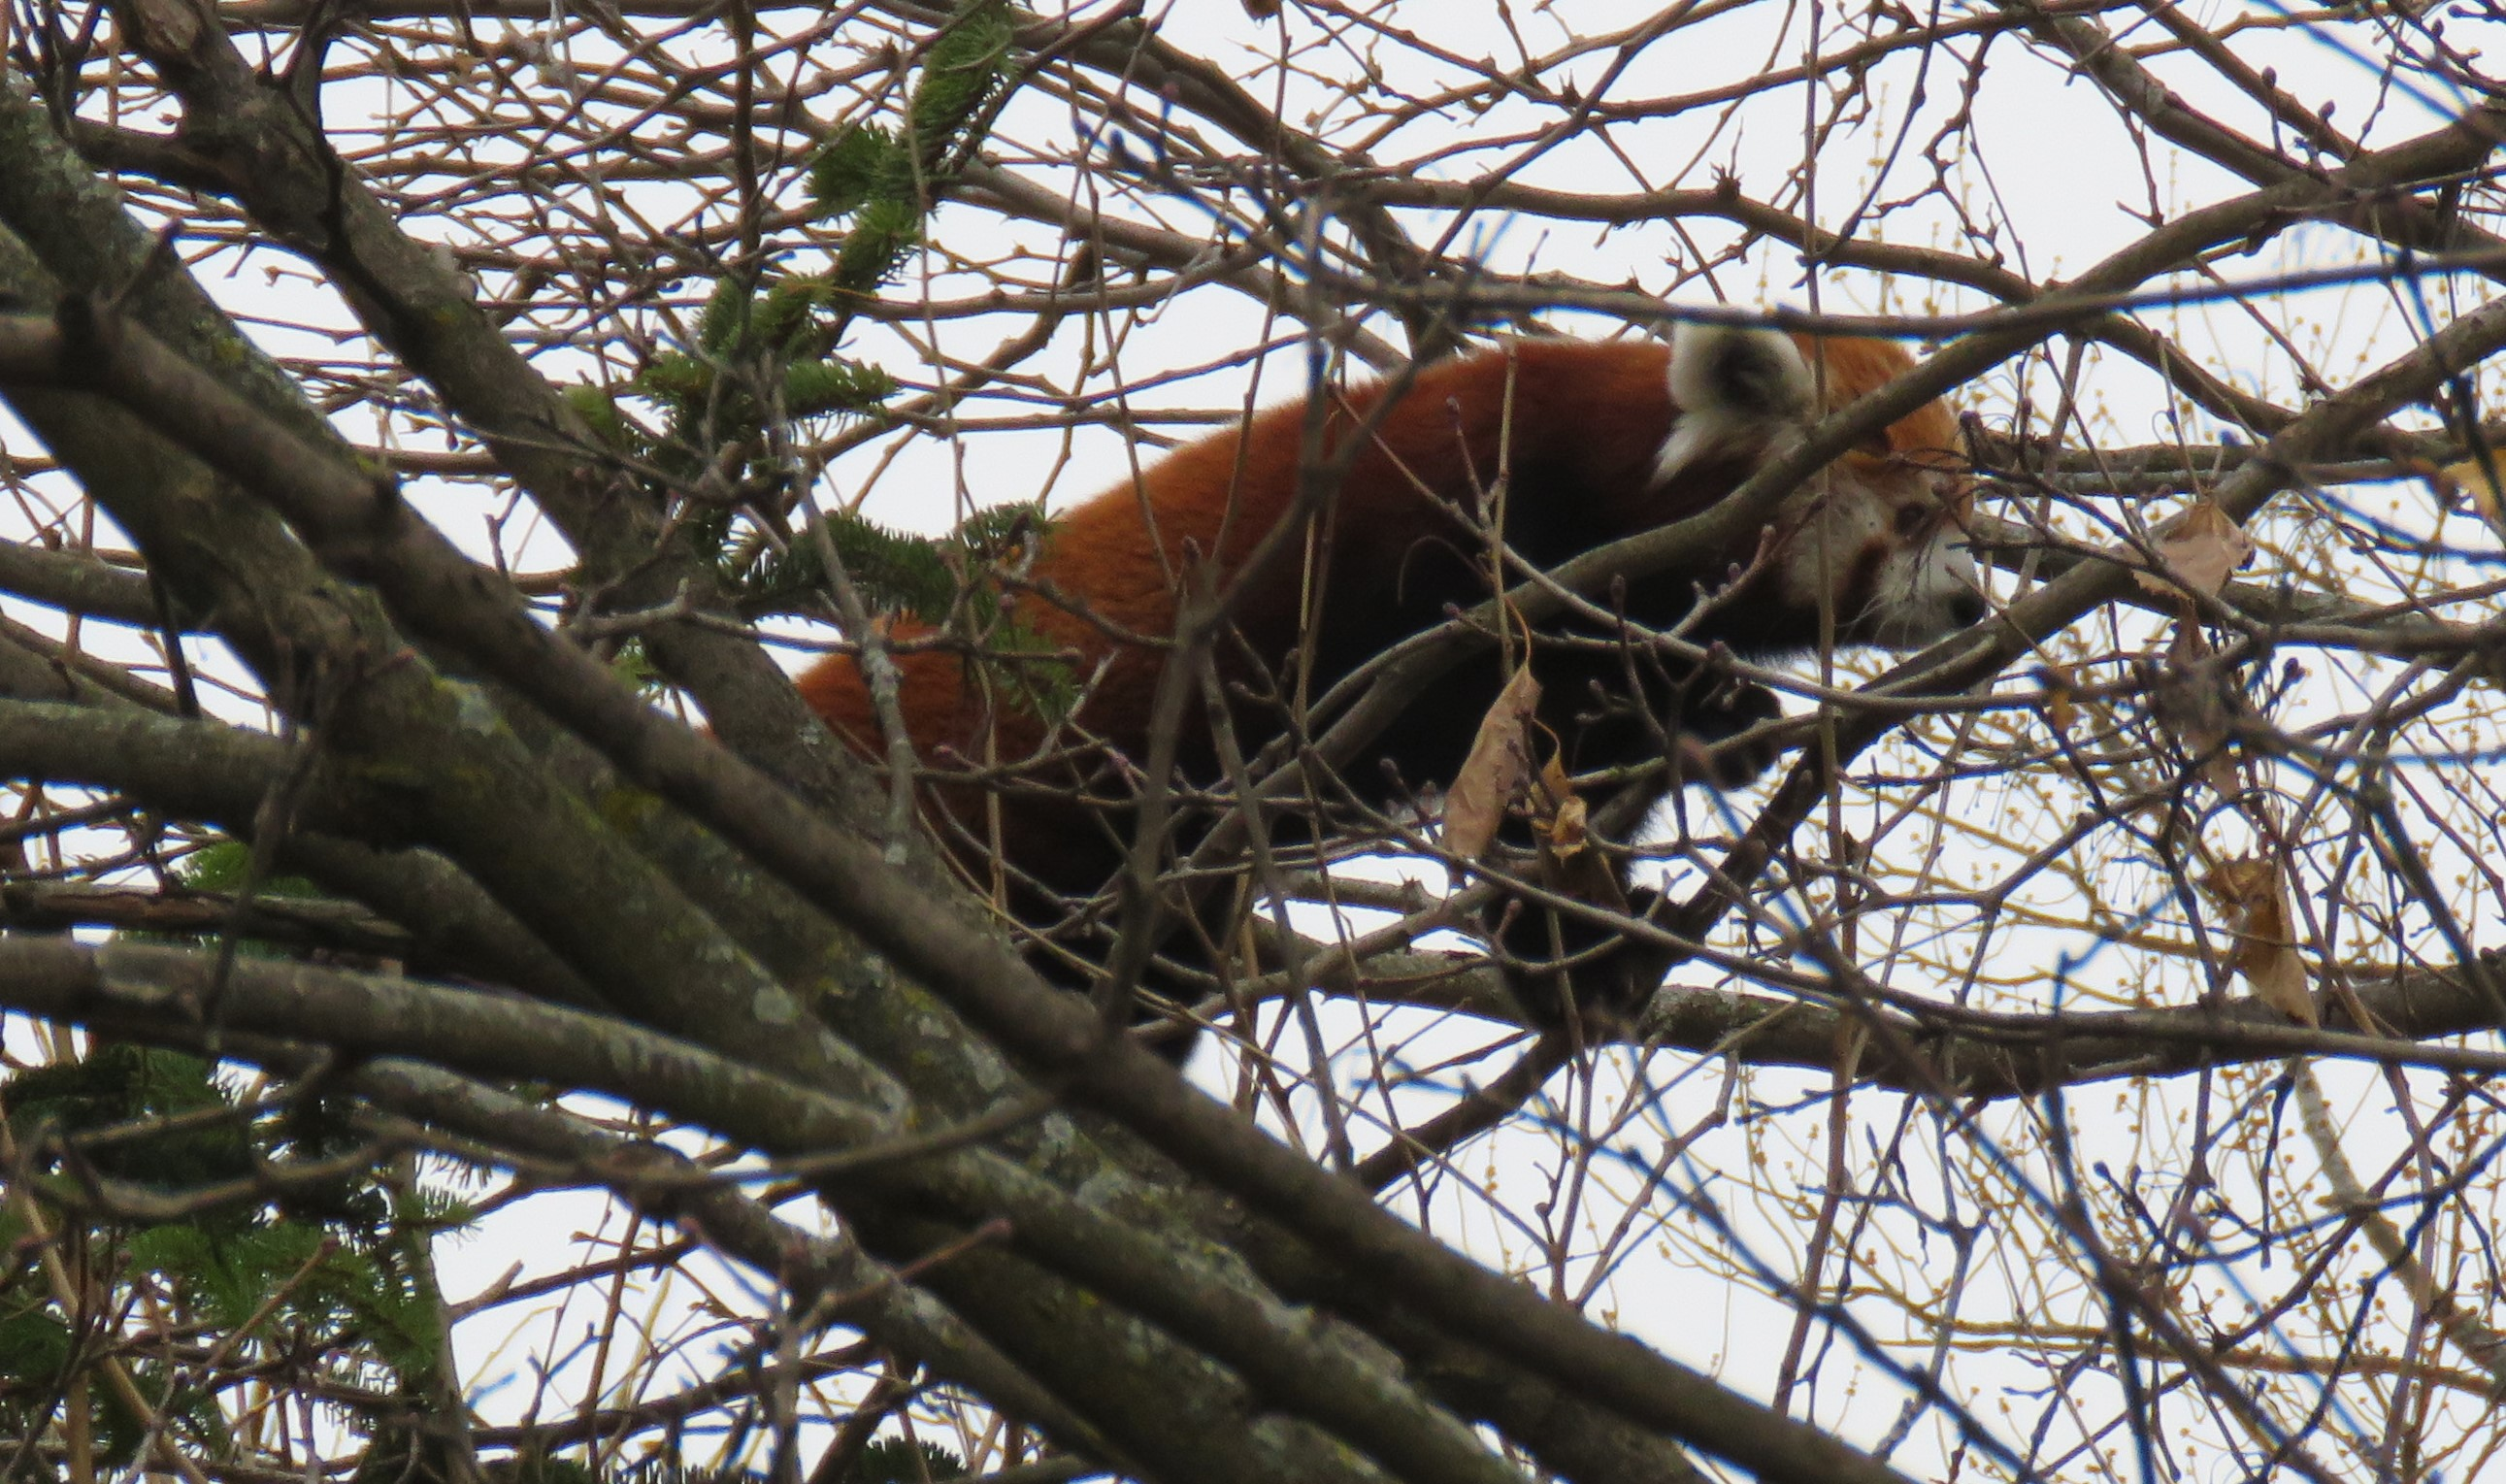 A red panda high up in a tree